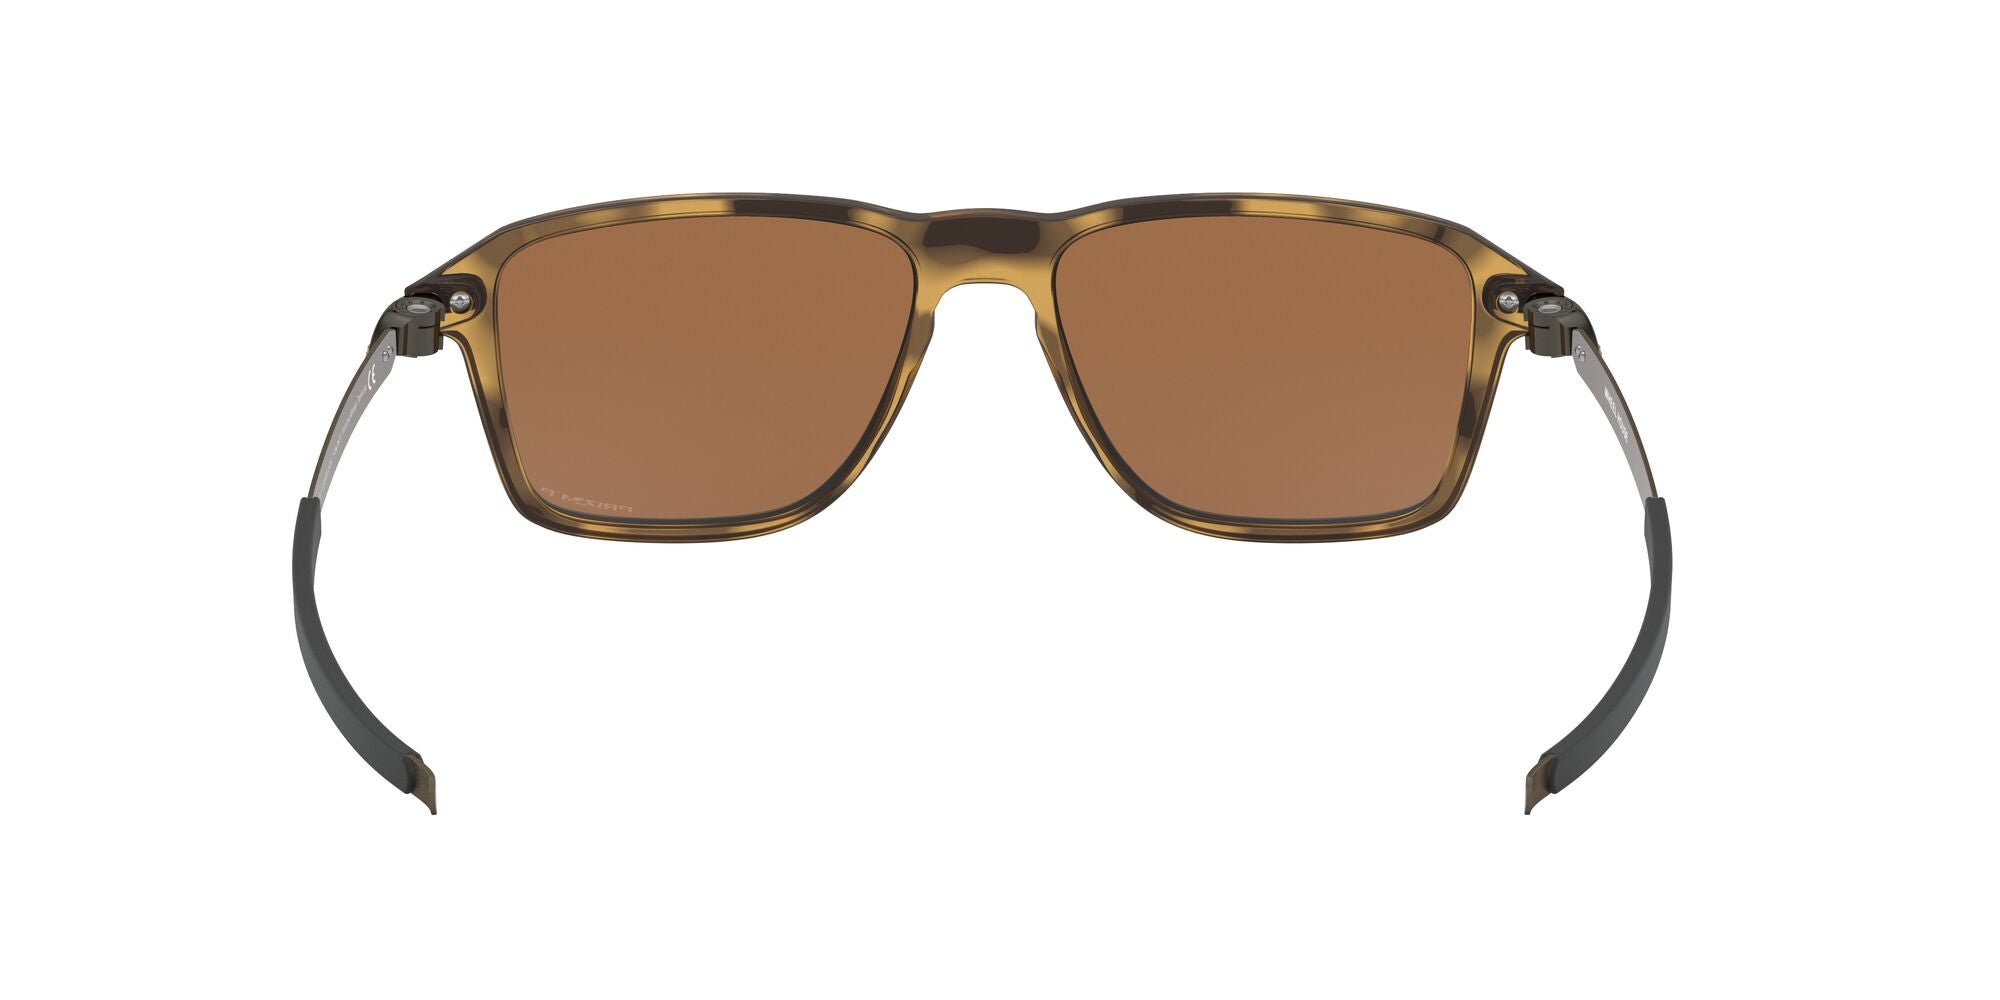 POLISHED BROWN TORTOISE | POLARIZED